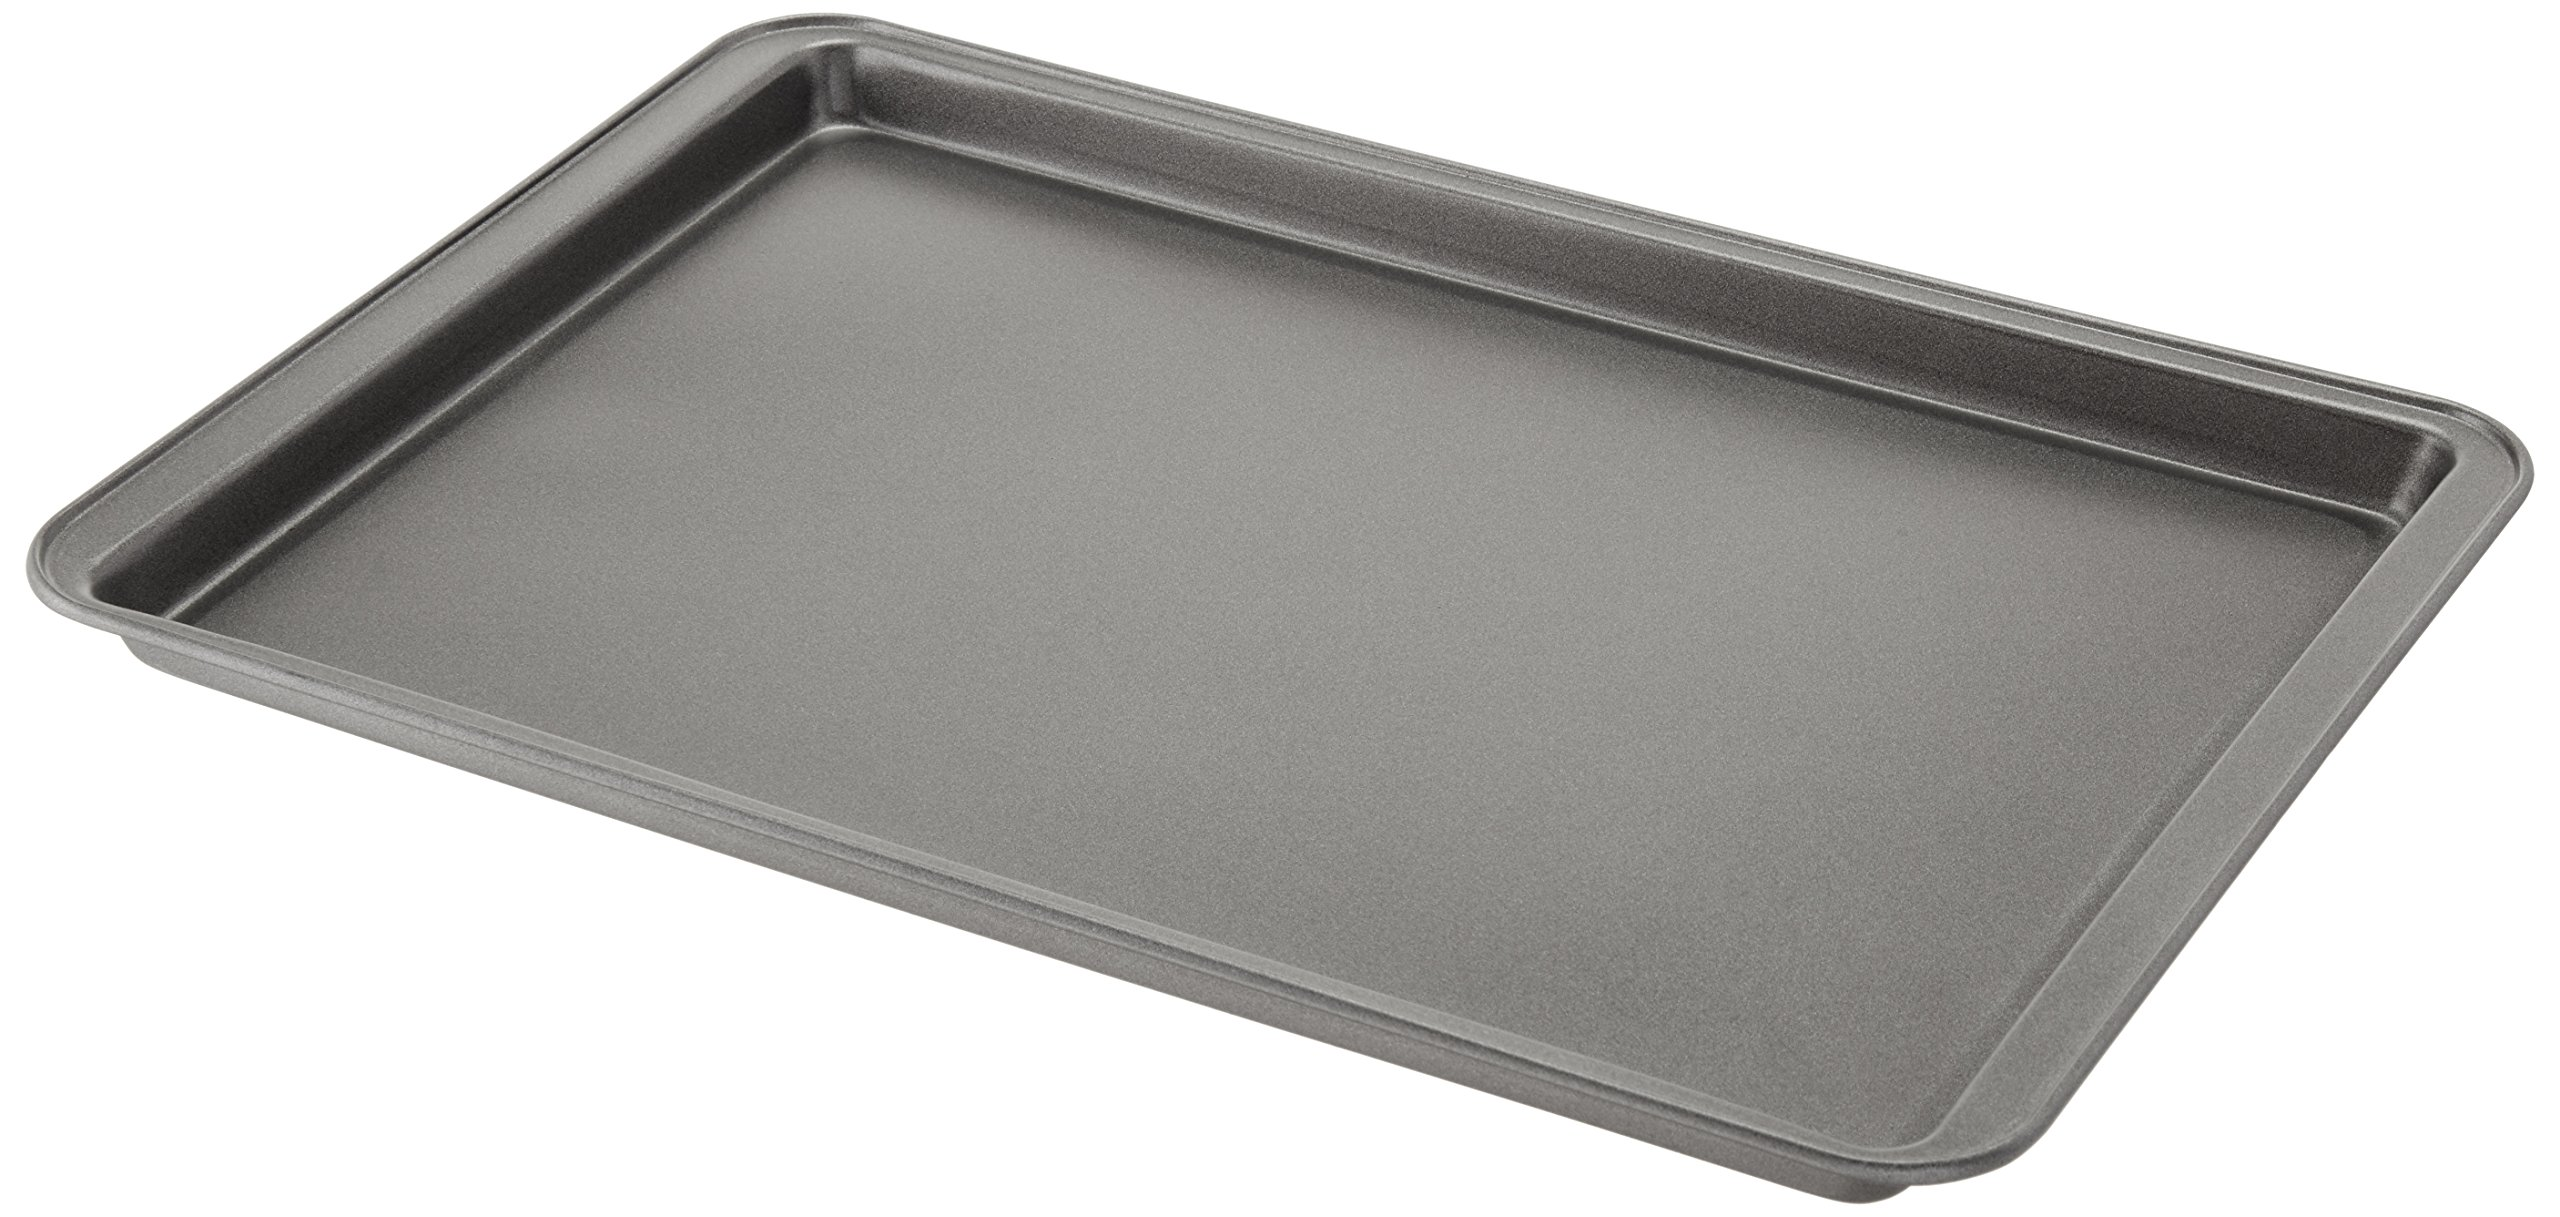 AmazonBasics 6-Piece Nonstick Bakeware Set by AmazonBasics (Image #3)